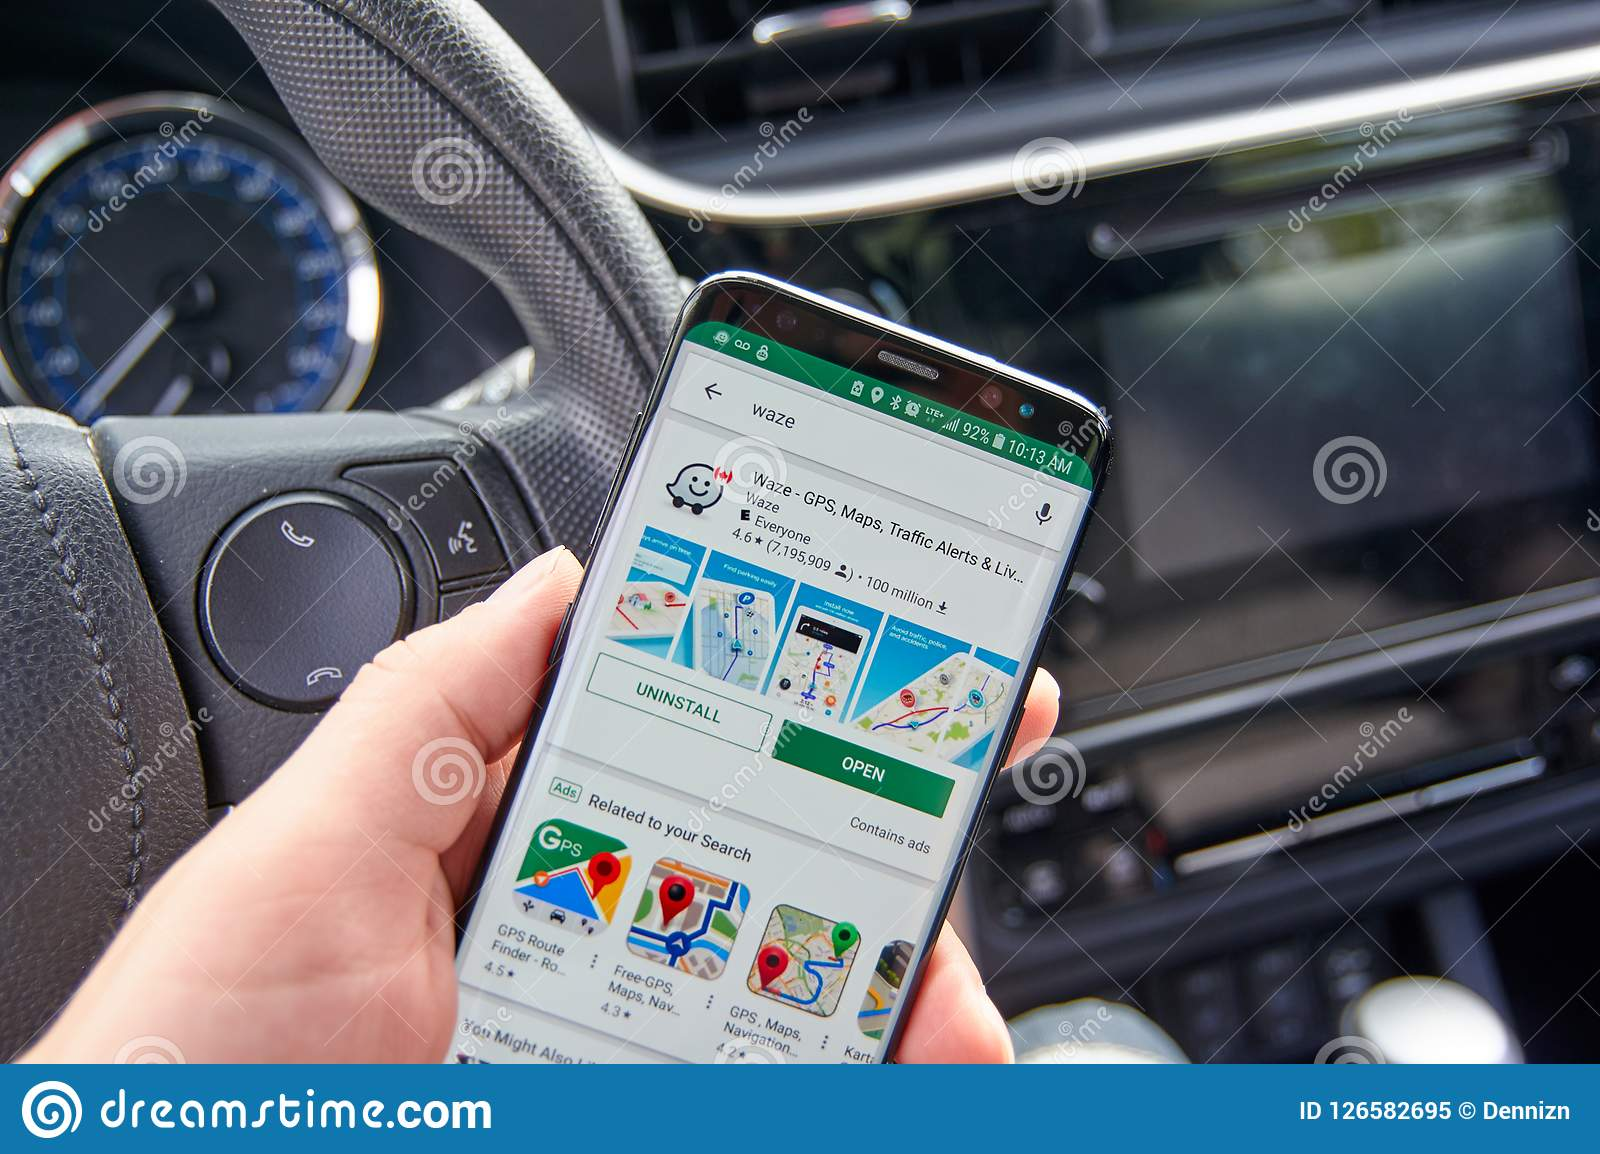 Waze Application On A Cell Phone Screen Editorial Image - Image of